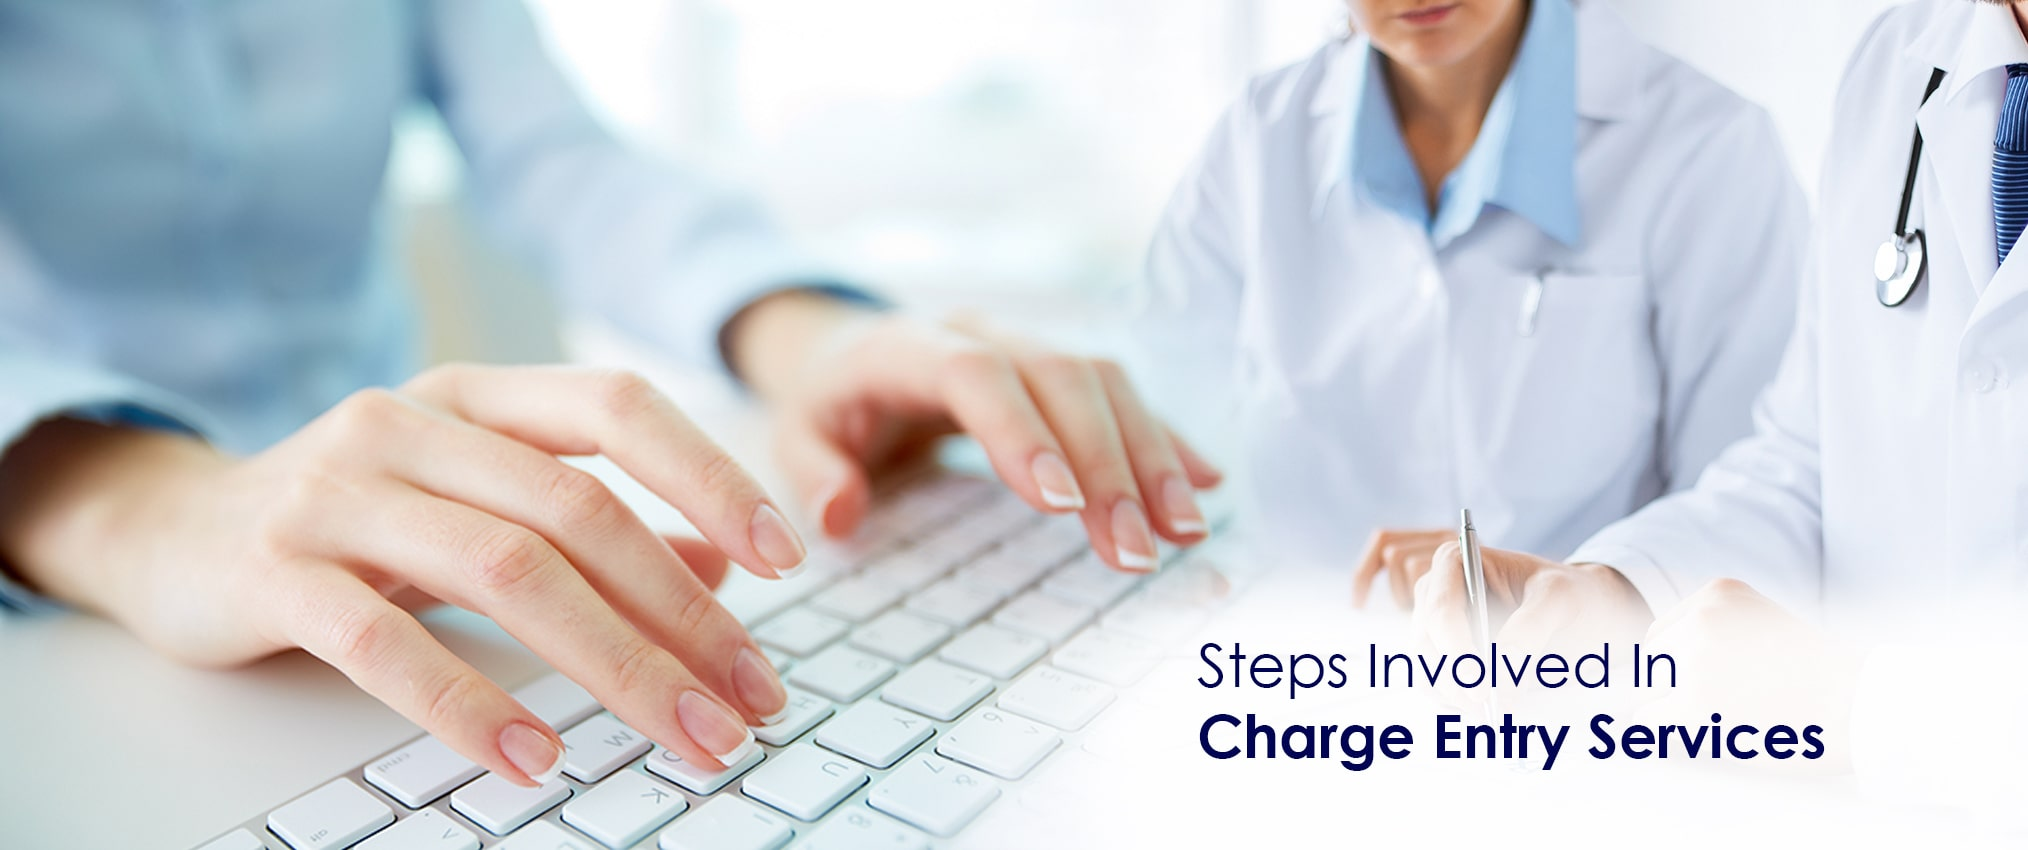 Processes involved in Charge Entry Services